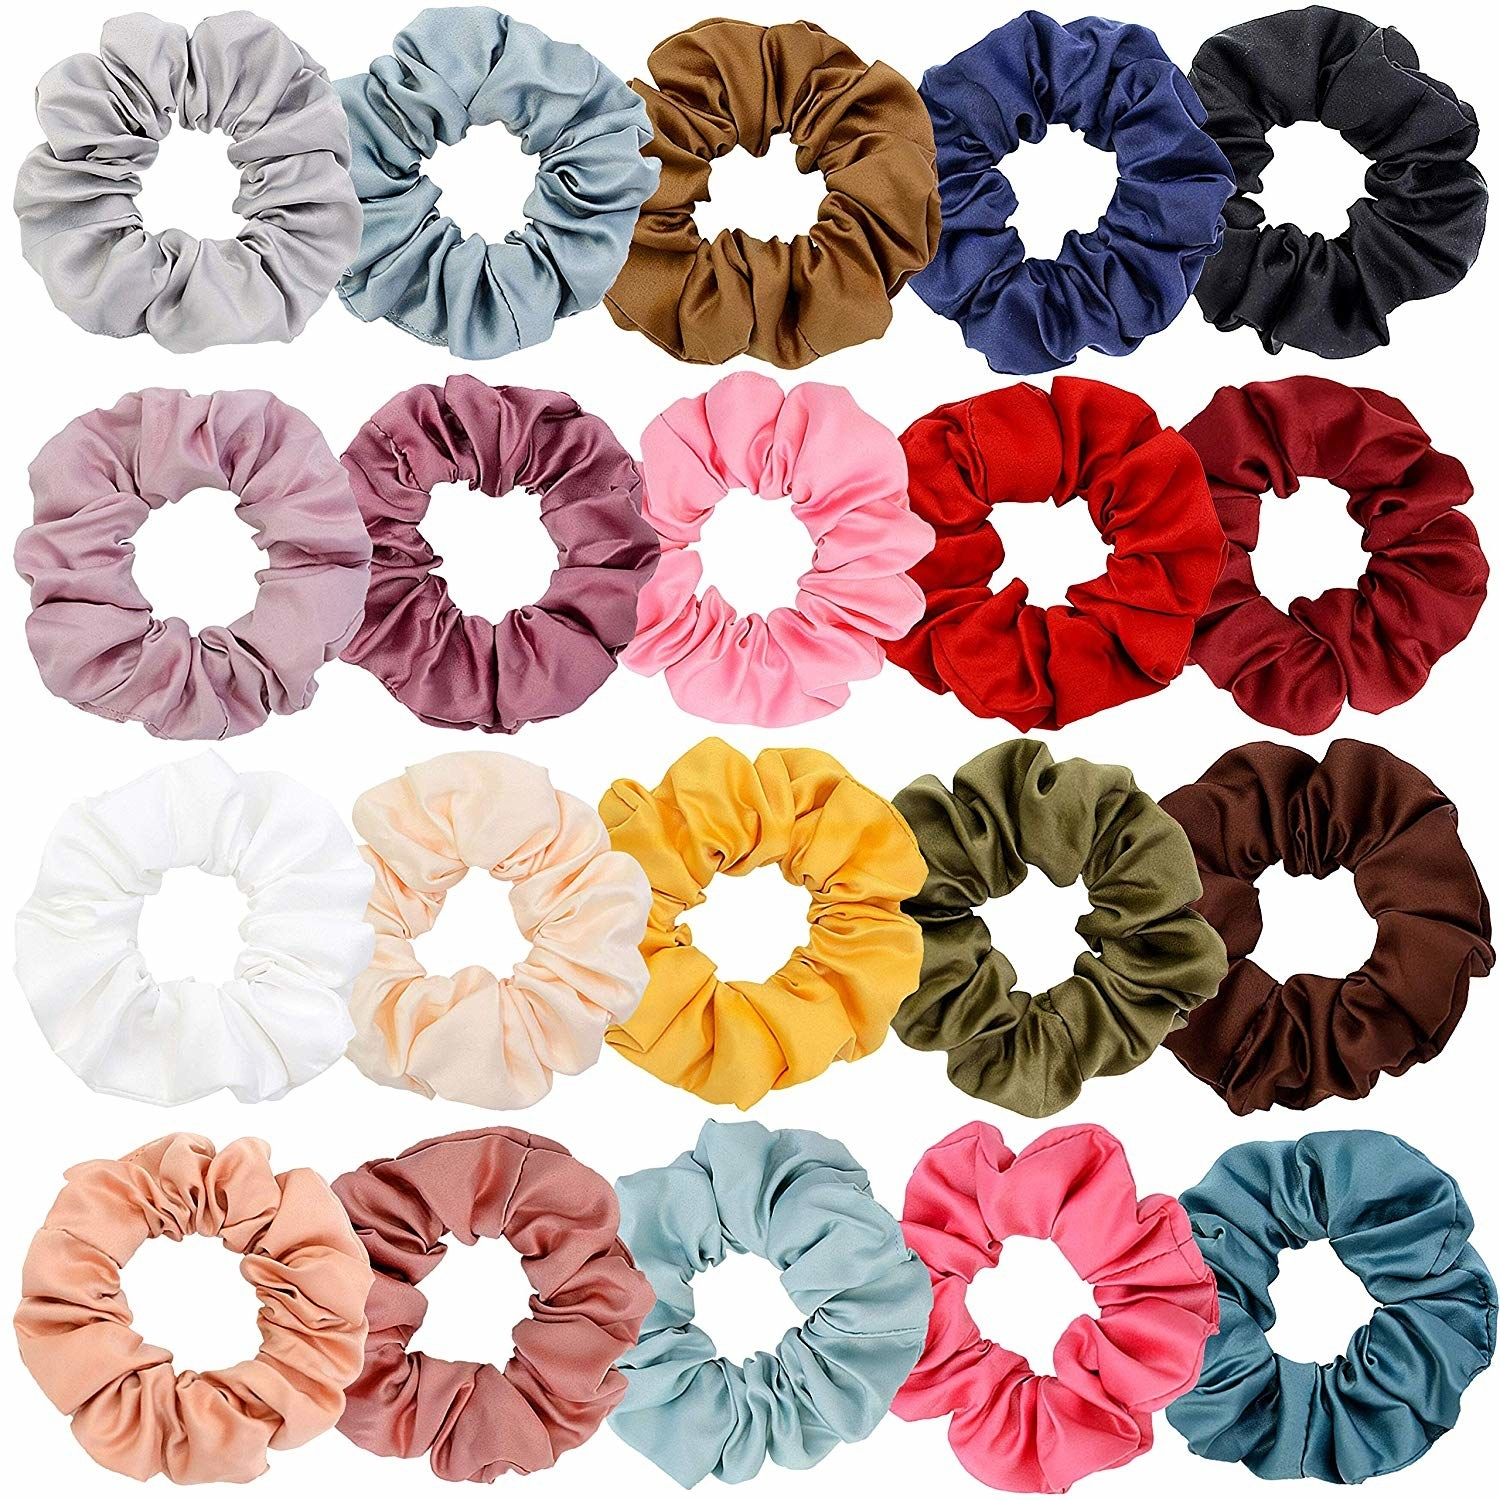 20 scrunchies lined up in different colors